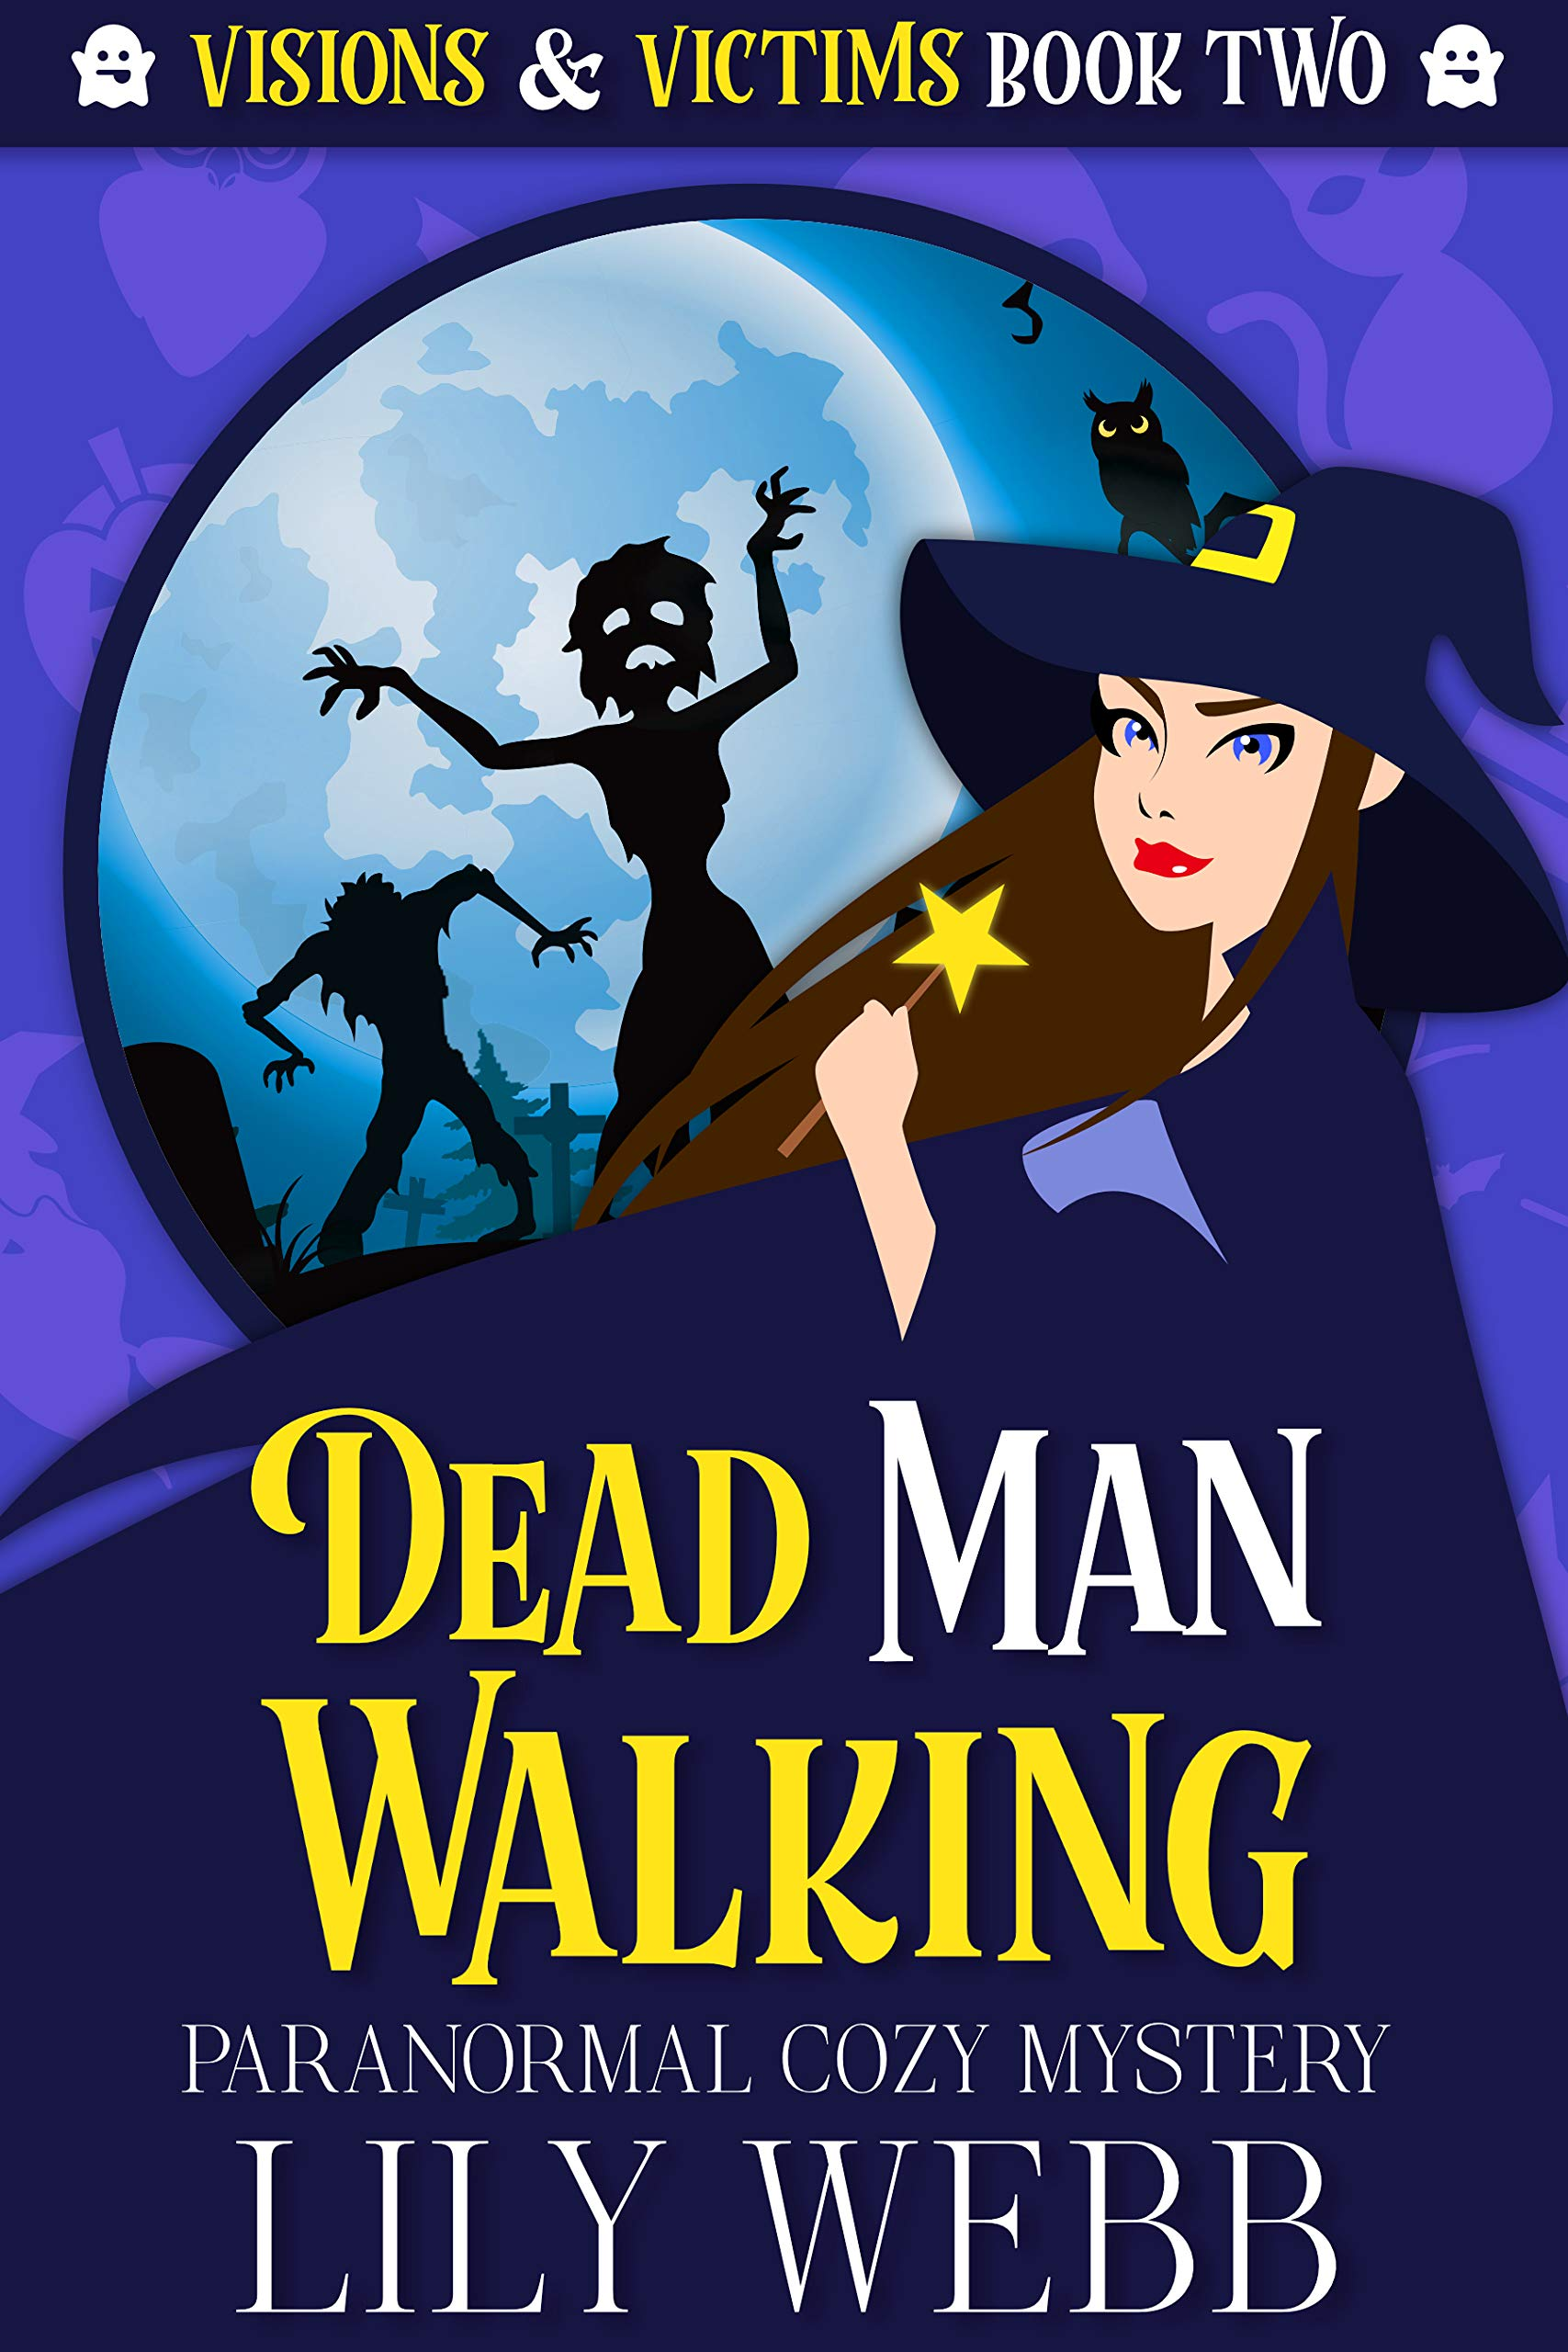 Dead Man Walking: Paranormal Cozy Mystery (Visions & Victims Book 2)